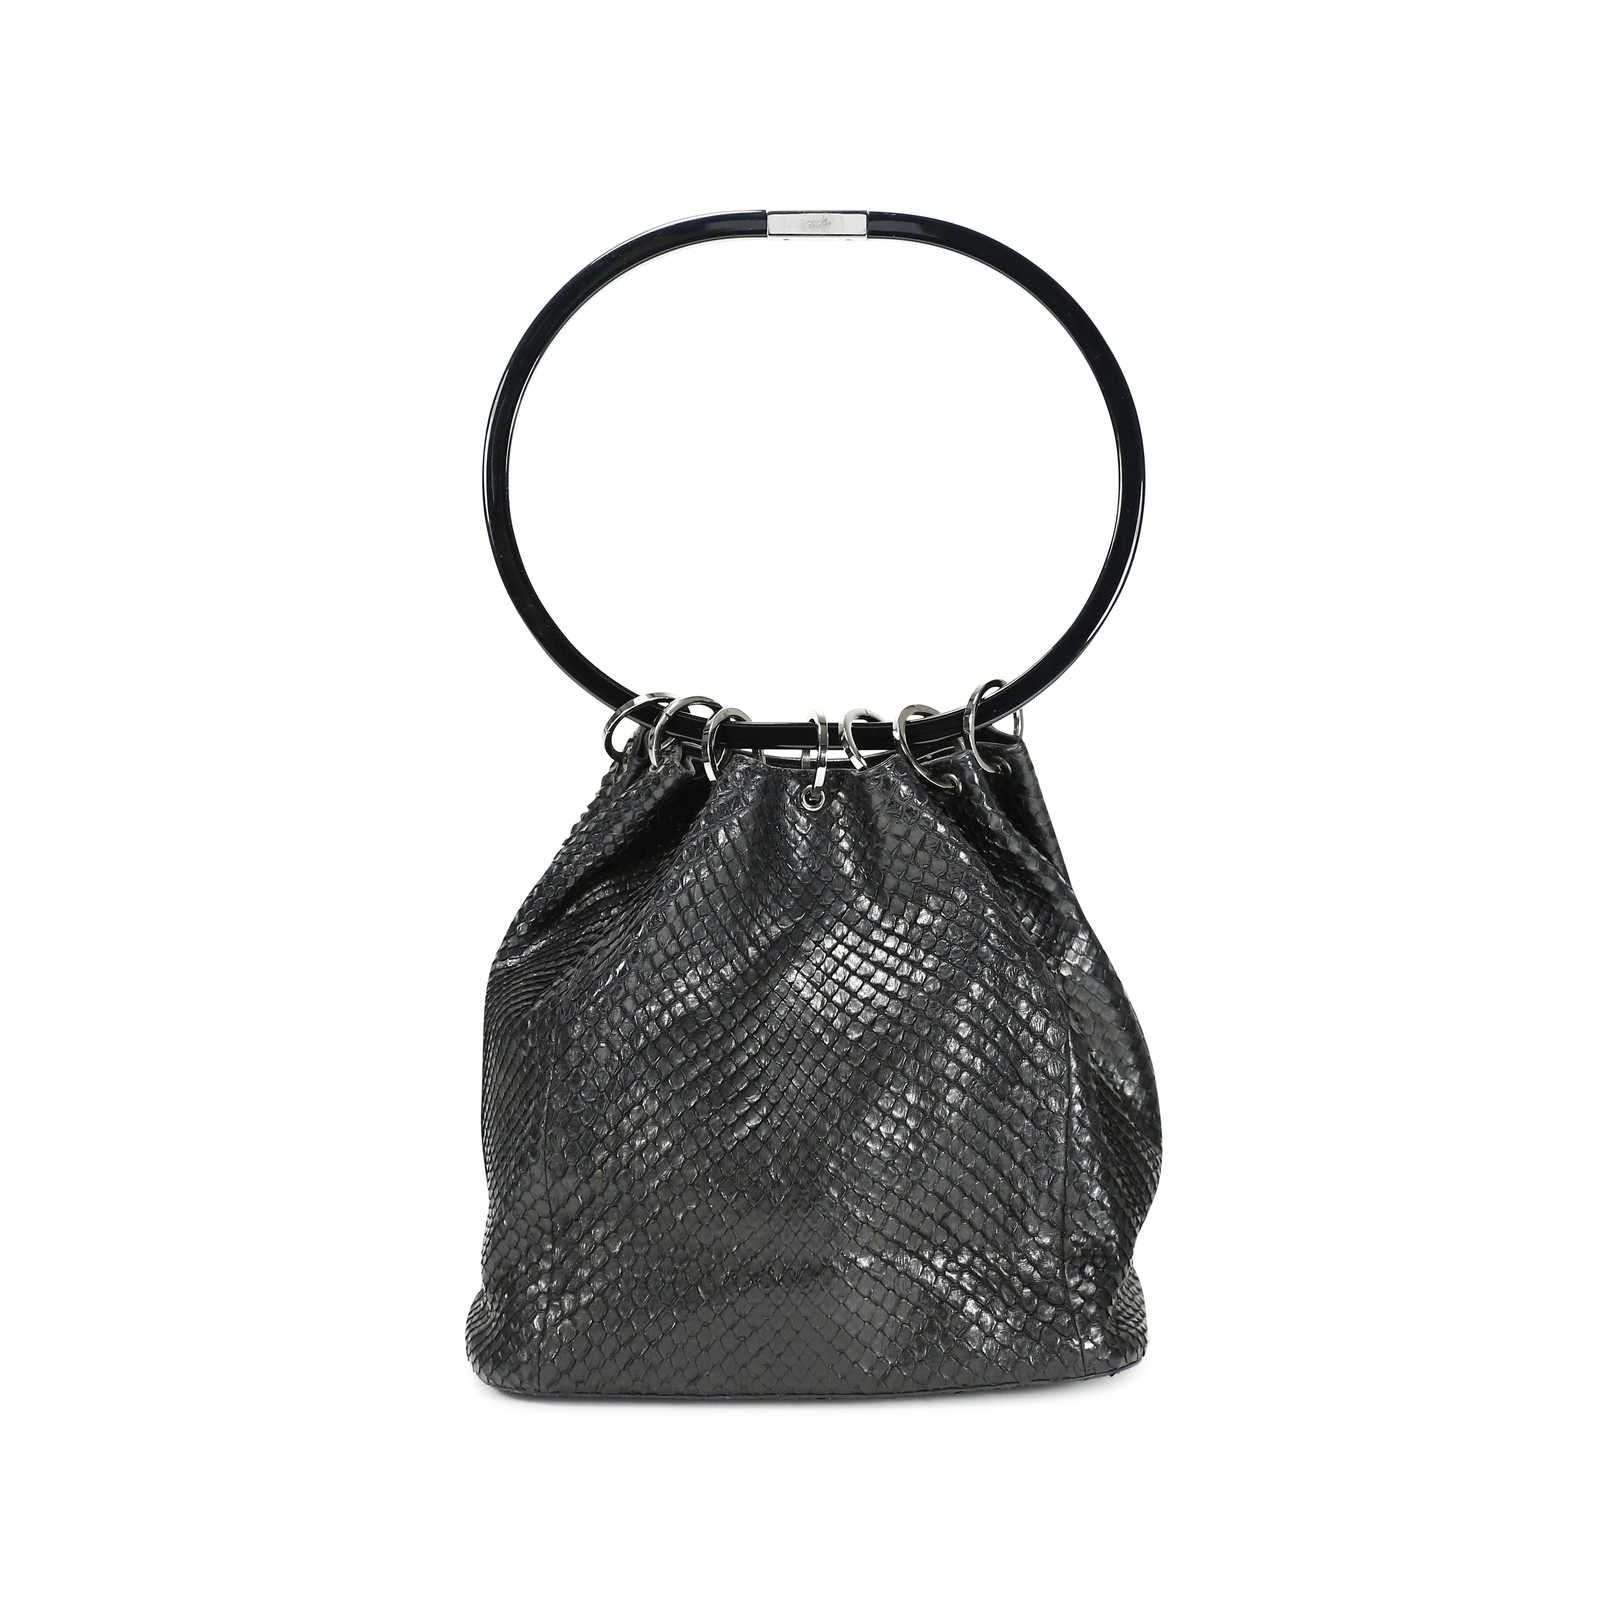 A unique vintage piece from Gucci crafted in a black python skin and designed with a unique oval shaped resin handle. Bag opens when handle is placed flat and silver toned metal ringlets extend out. Interior is lined in leather and has a zippered pocket. Please note that there are stains on lining, scratches on resin handle and slight tarnishing on hardware. Some wear to python.  | Measurements : 23cm (length) x 24cm (height) x 11cm (depth)